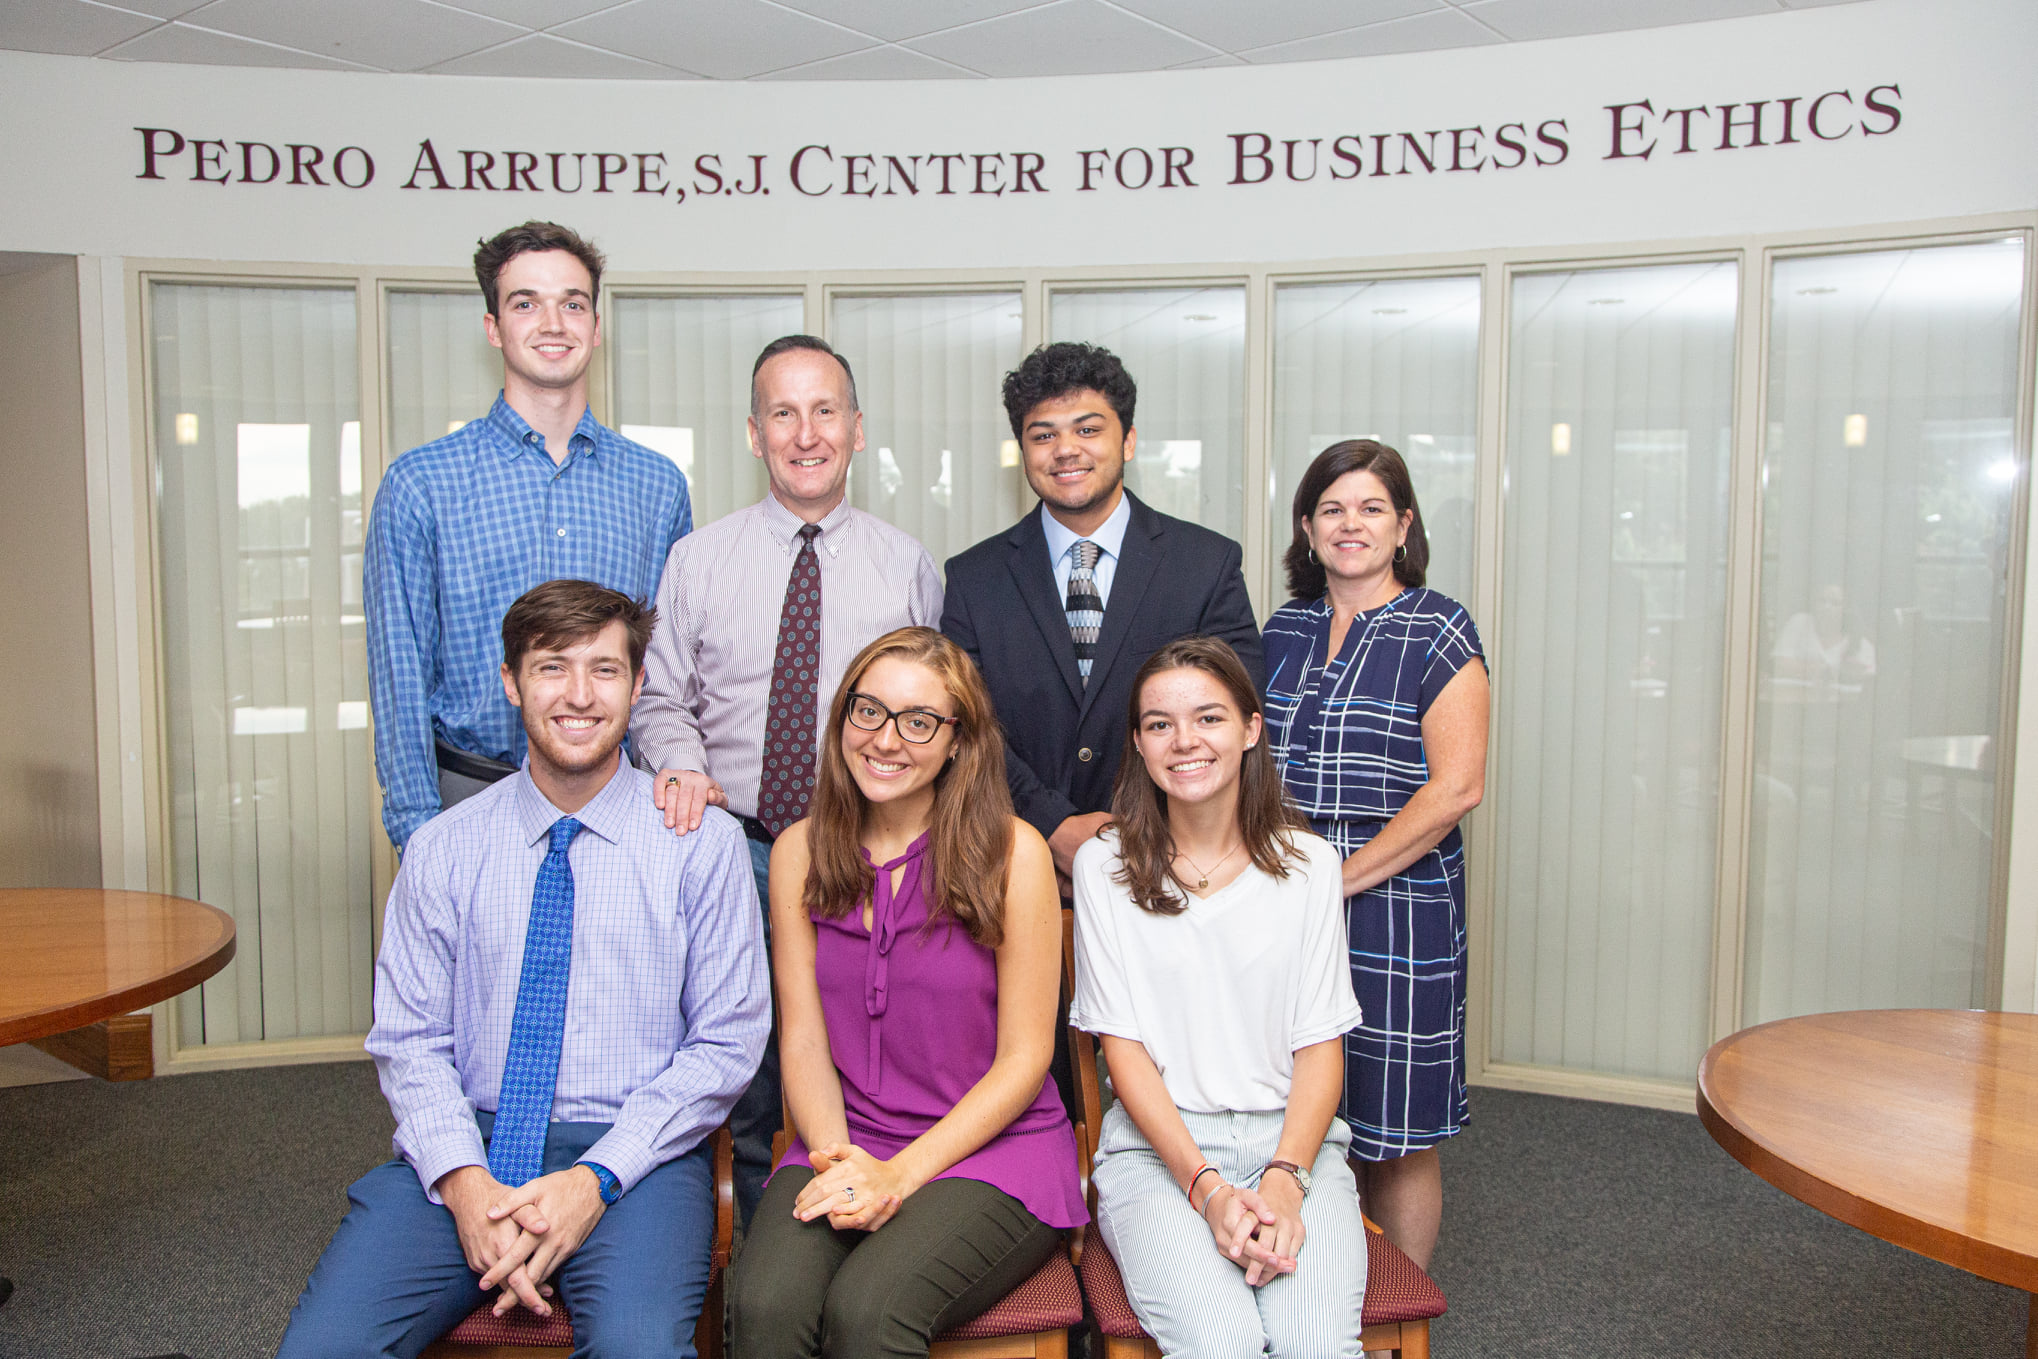 The student and faculty team from the Arrupe center pose in front of the sign.